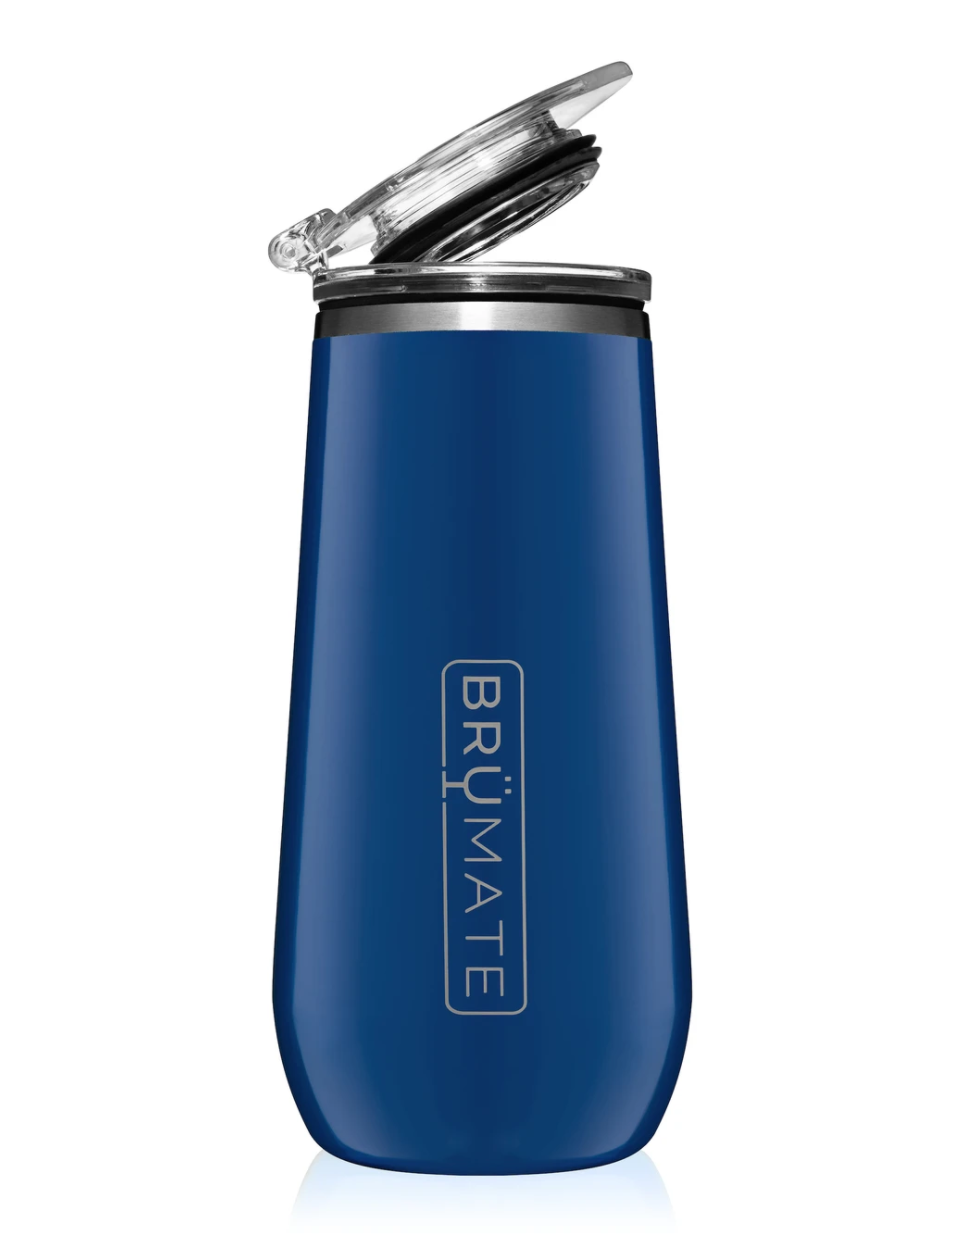 Flute Insulated 12oz Champagne Flute Royal Blue